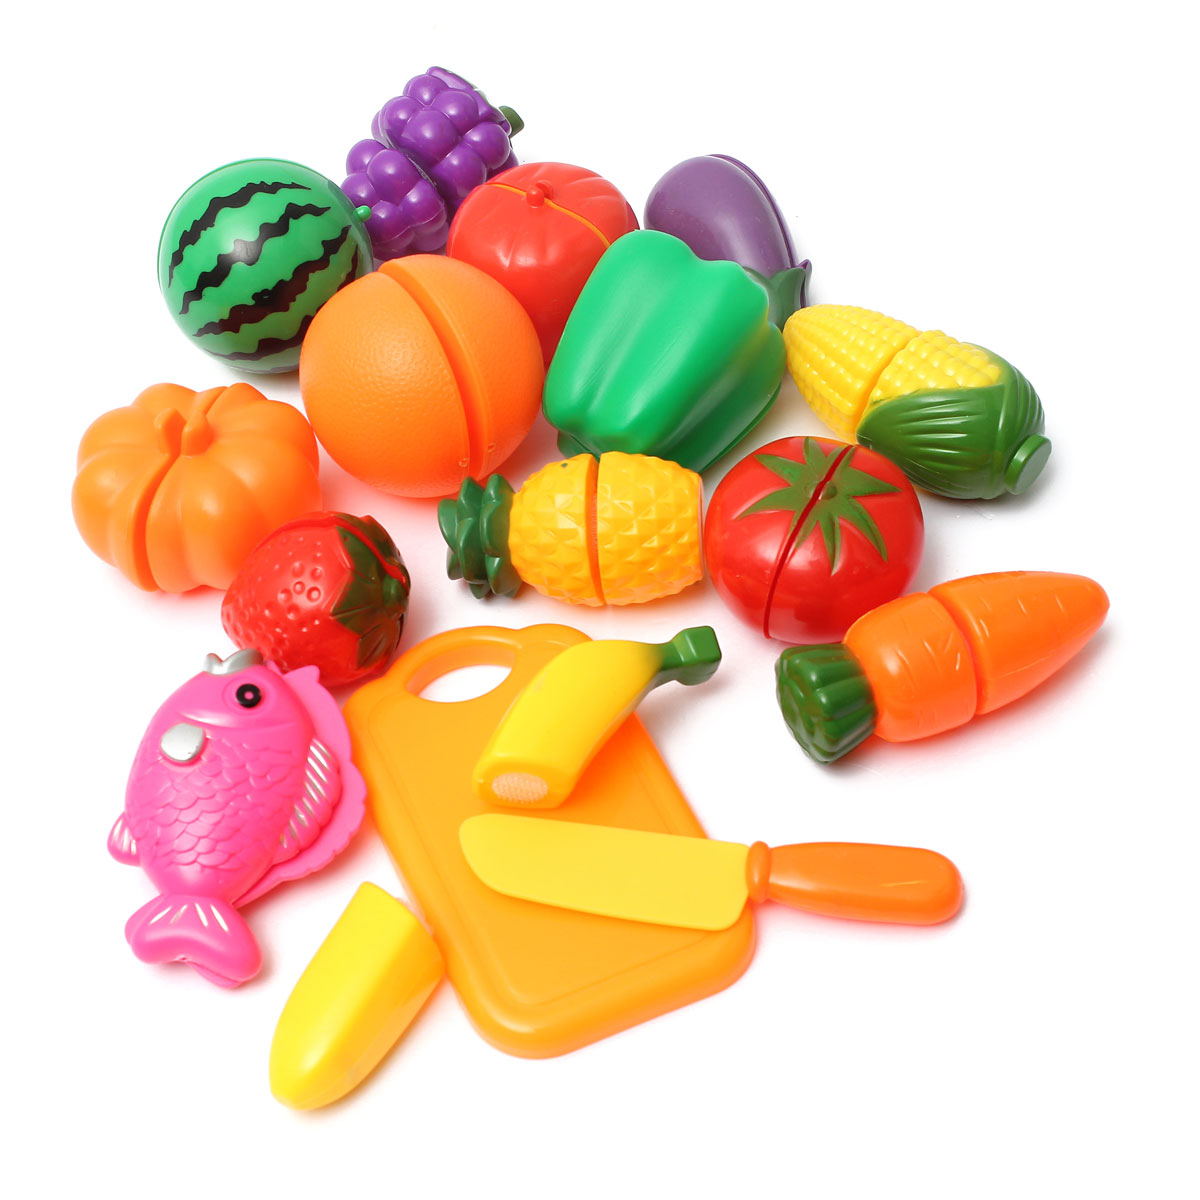 kids pretend role play kitchen fruit vegetable food toys cutting set